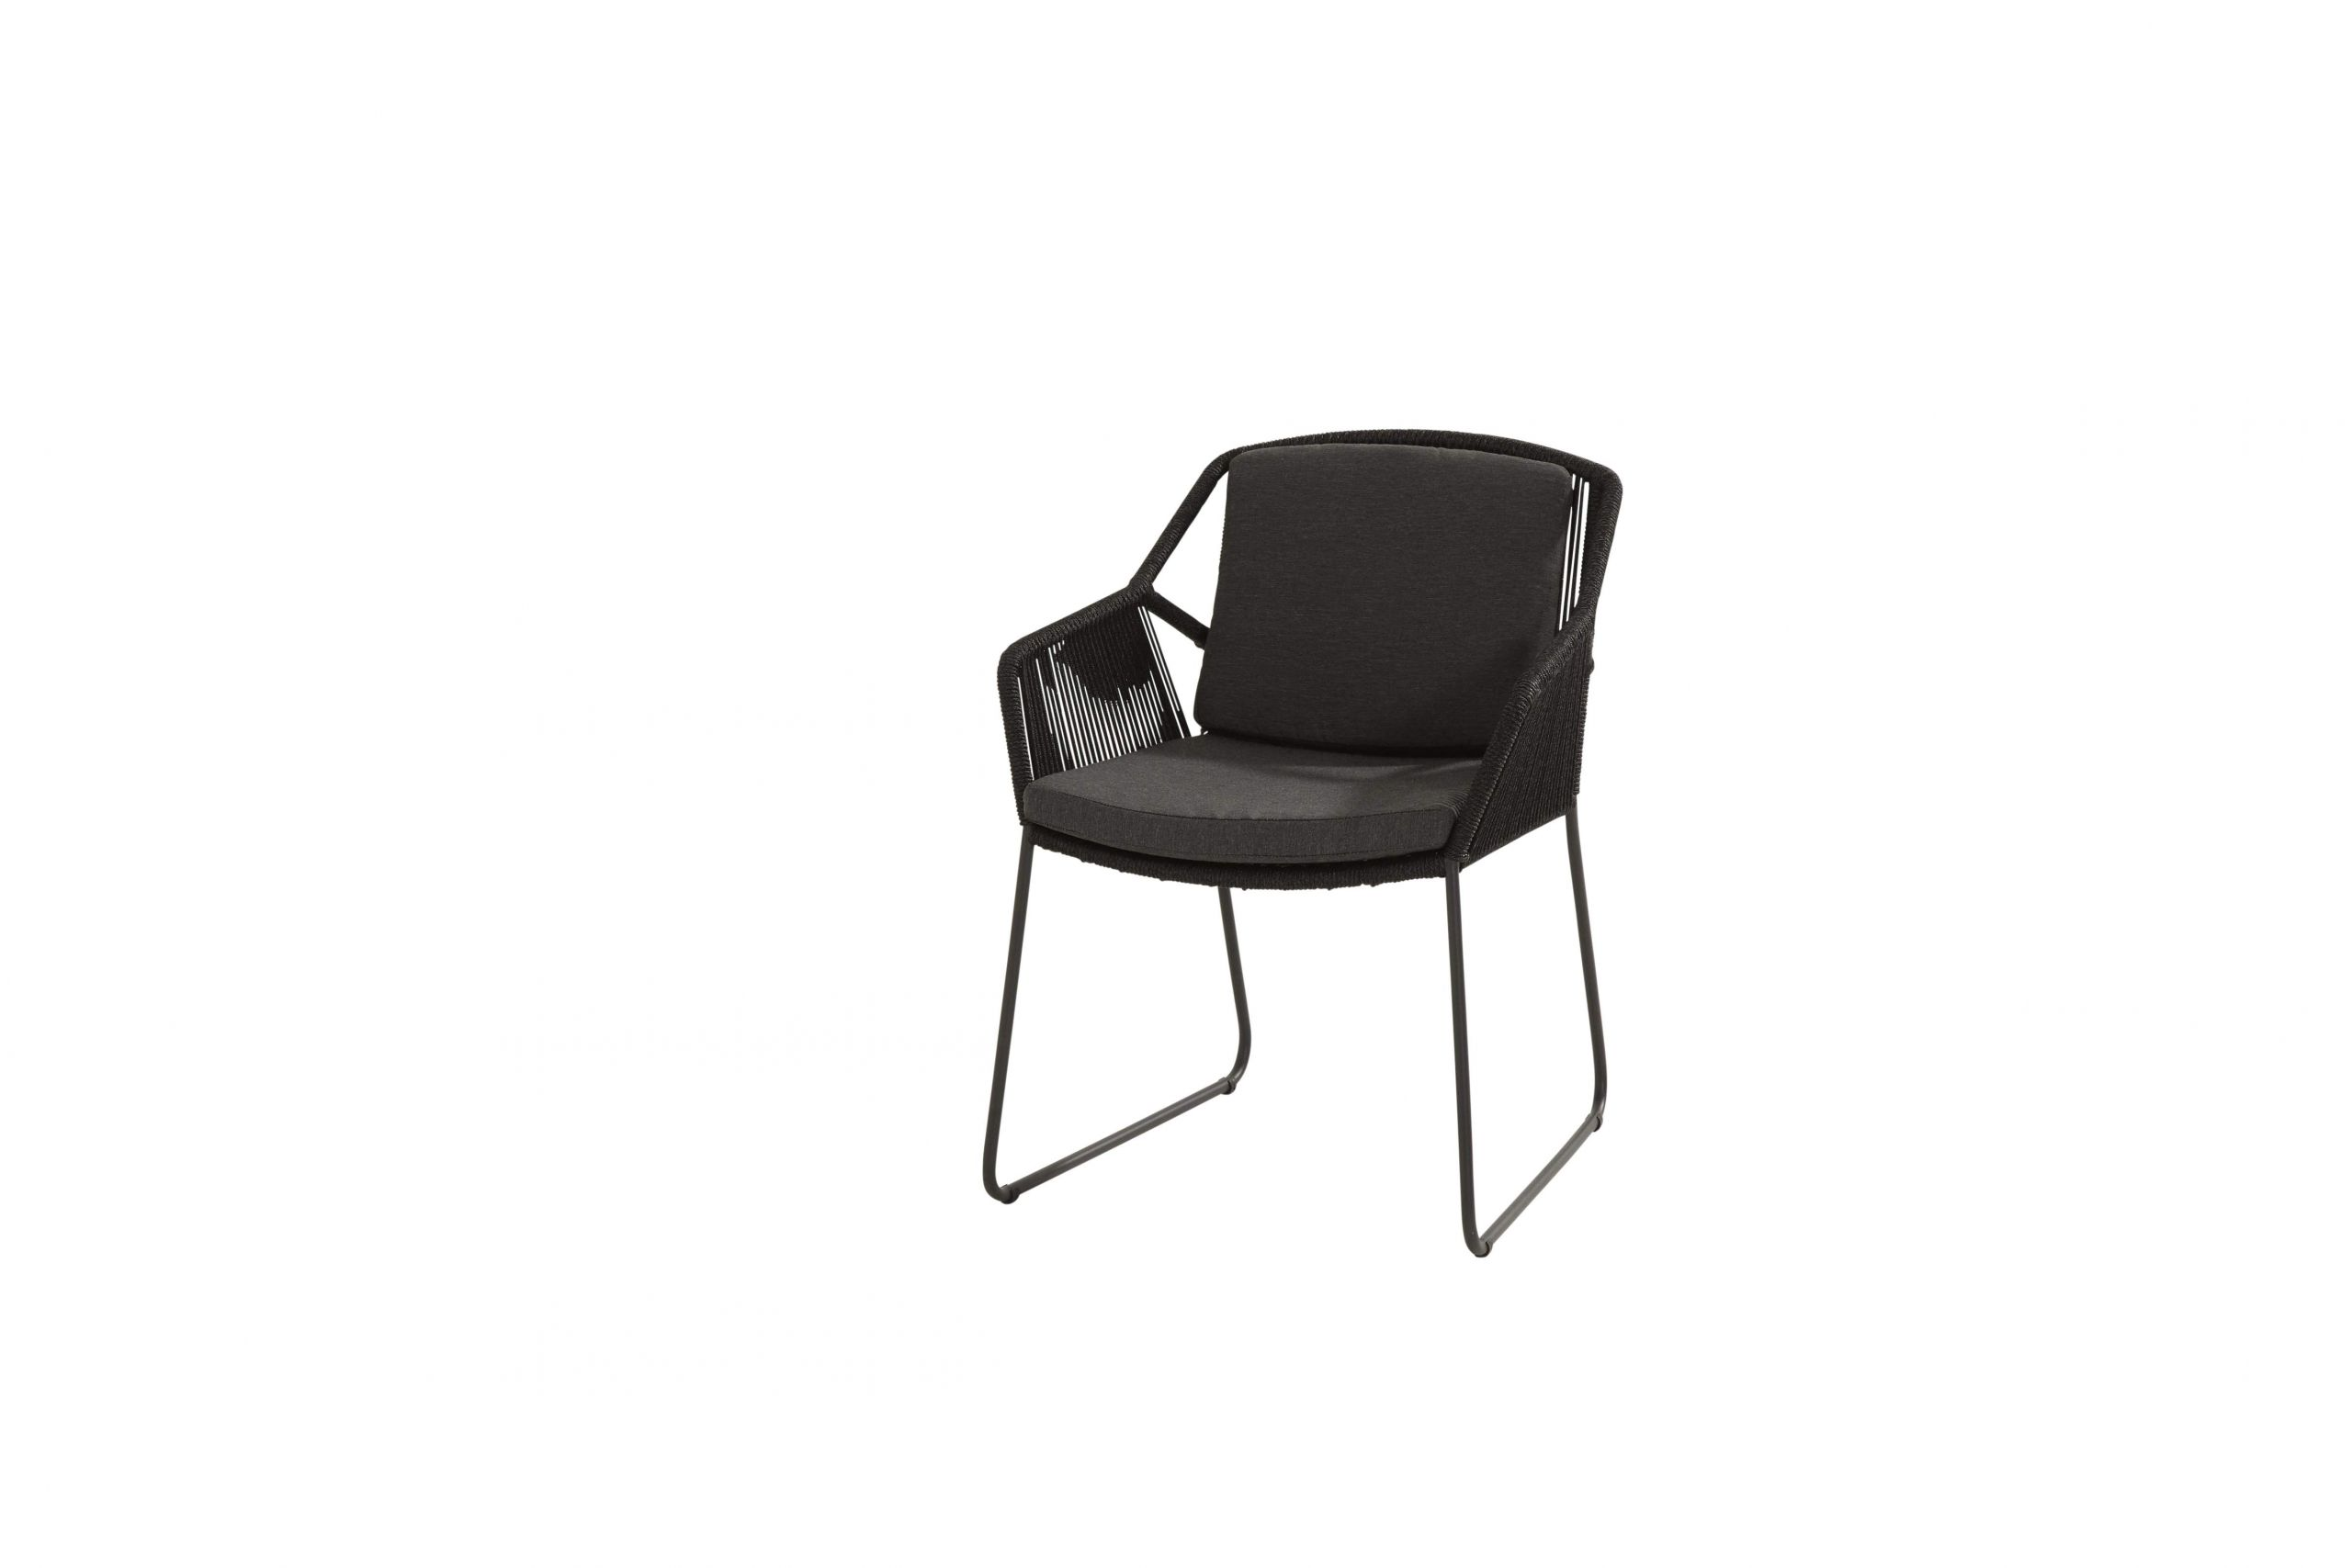 Accor dining chair Anthracite with 2 cushions 01